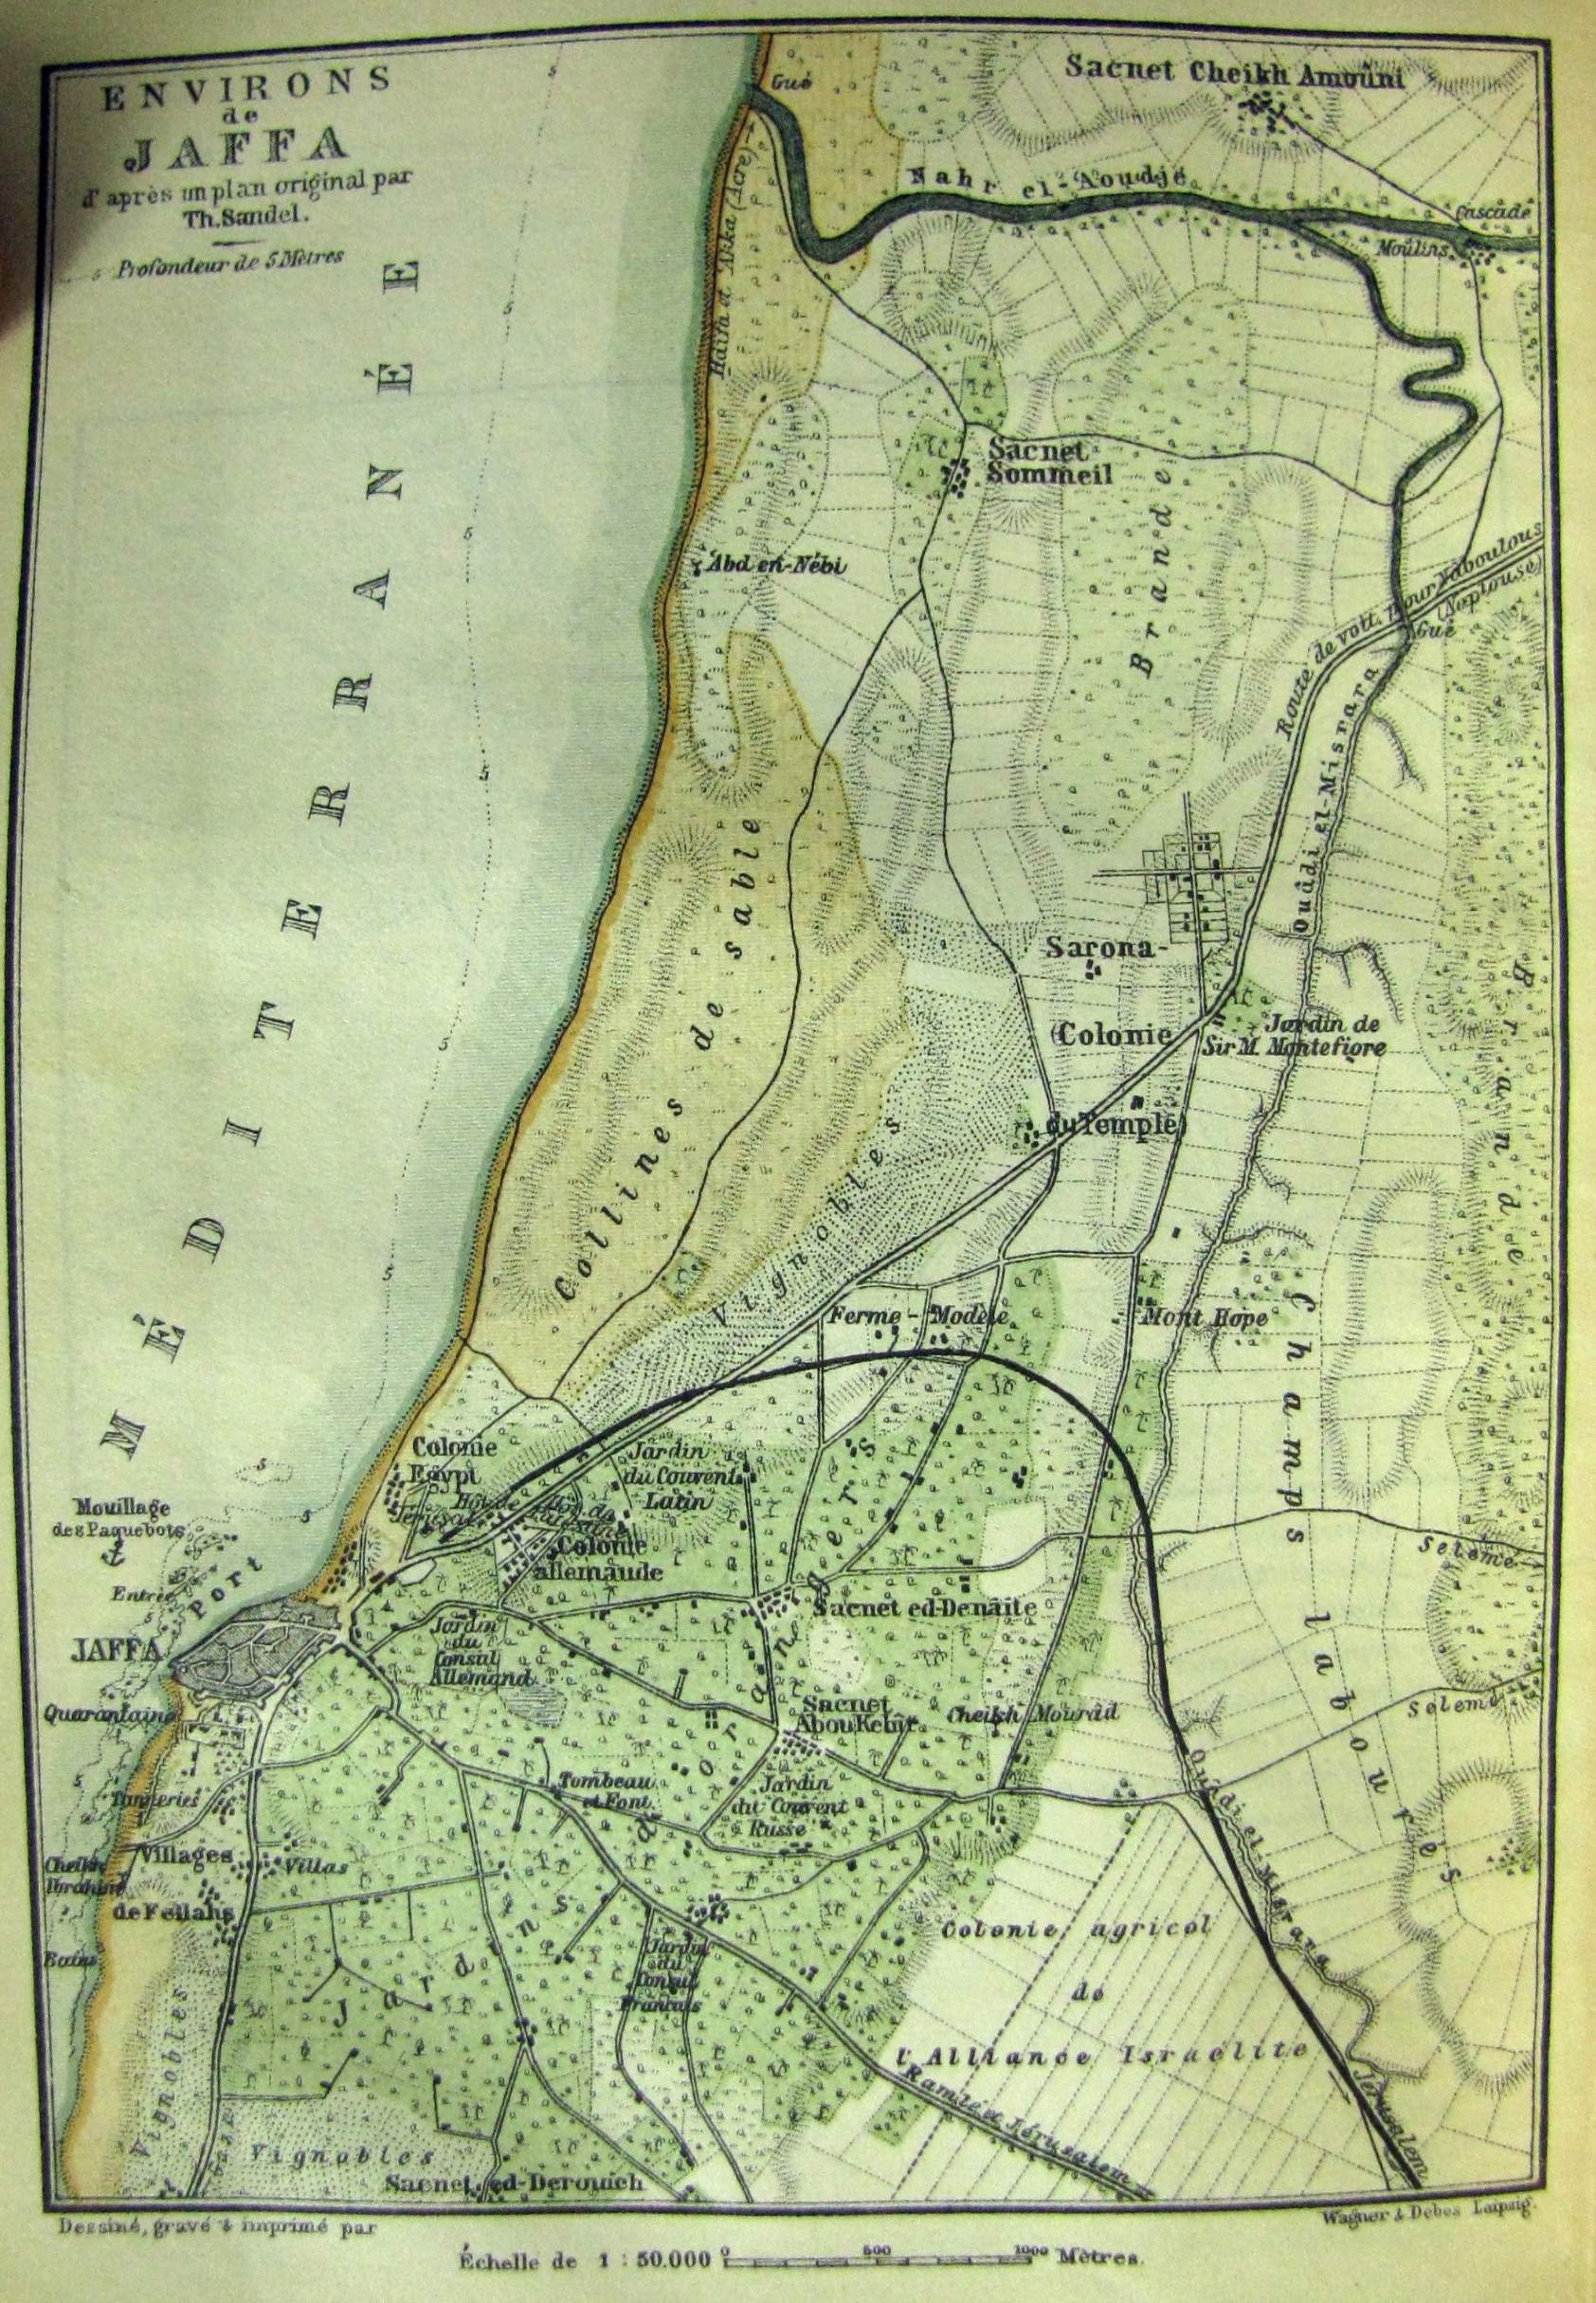 al-Mas'udiyya - المسعوديّة/صميل : The surrounding of Jaffa in a Baedeker travel guide of Palestine (1893) Sacnet Sommeil = al-Mas'udiyya